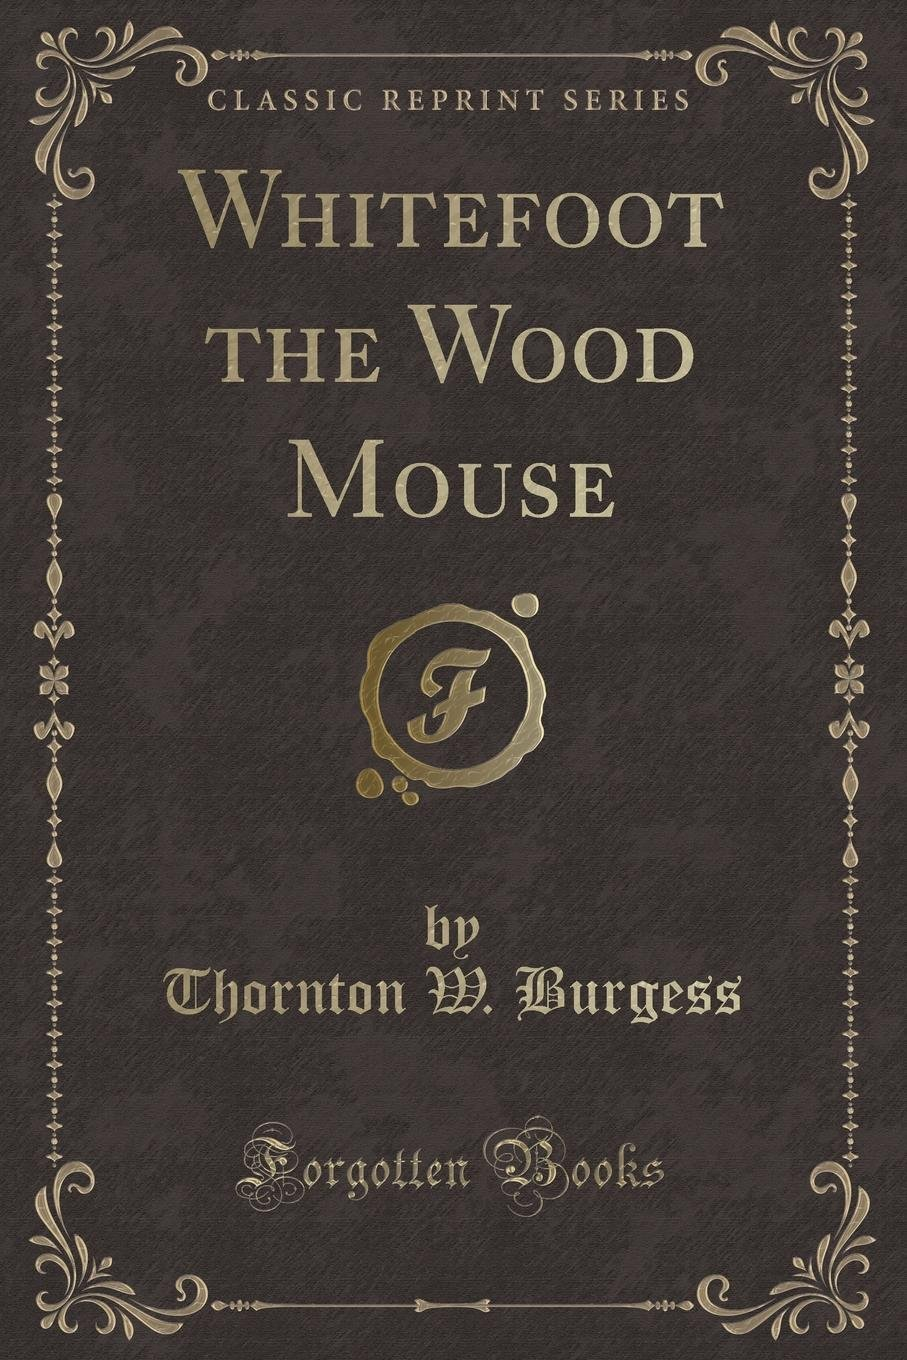 Whitefoot the Wood Mouse (Classic Reprint): Thornton W. Burgess:  9781334157813: Amazon.com: Books